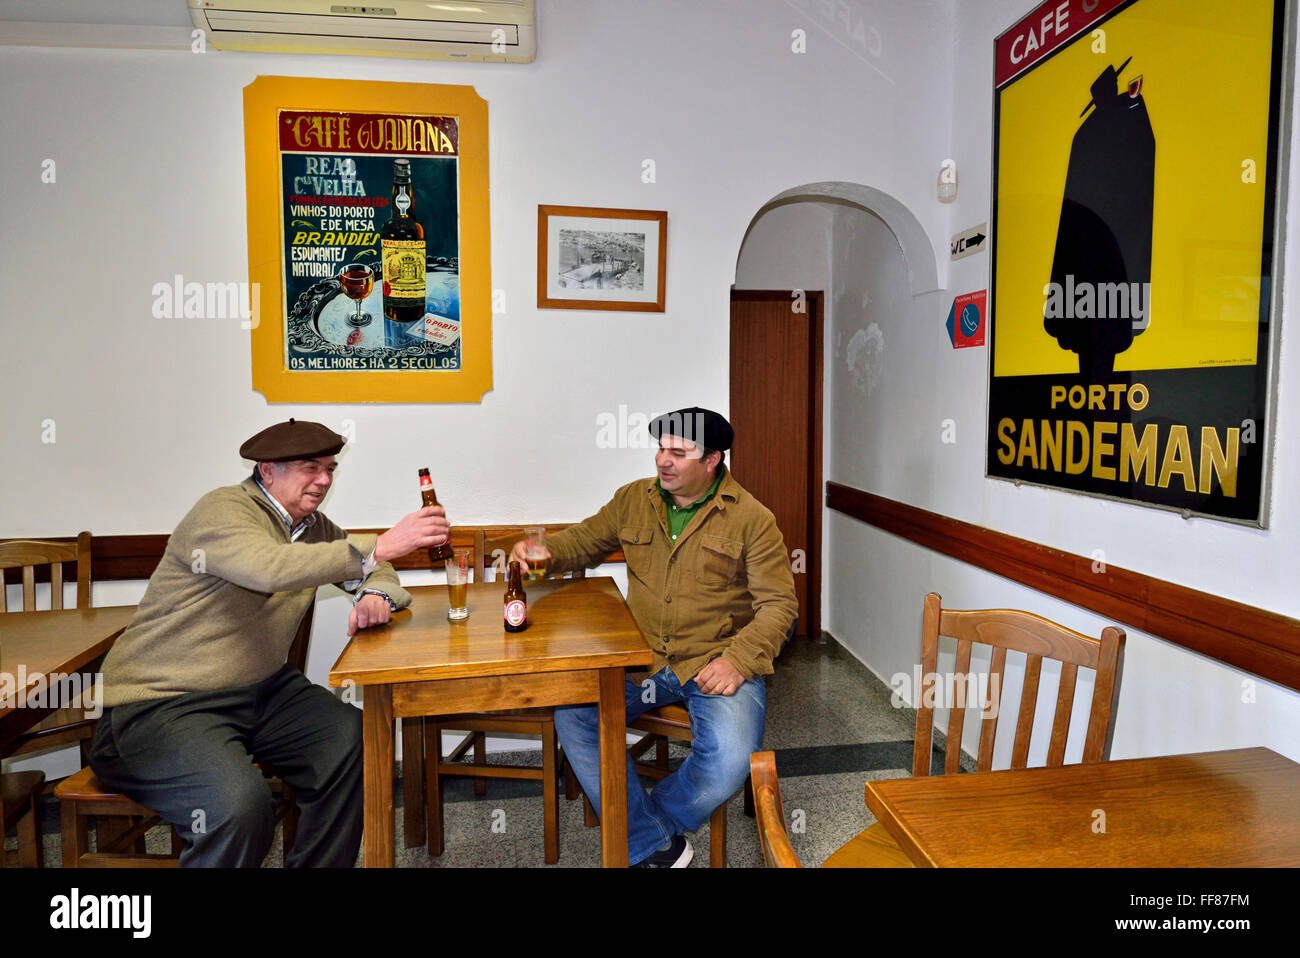 Portugal, Alentejo: Two native men having a beer and a chat in the traditional Café Guadiana in Mértola - Stock Image